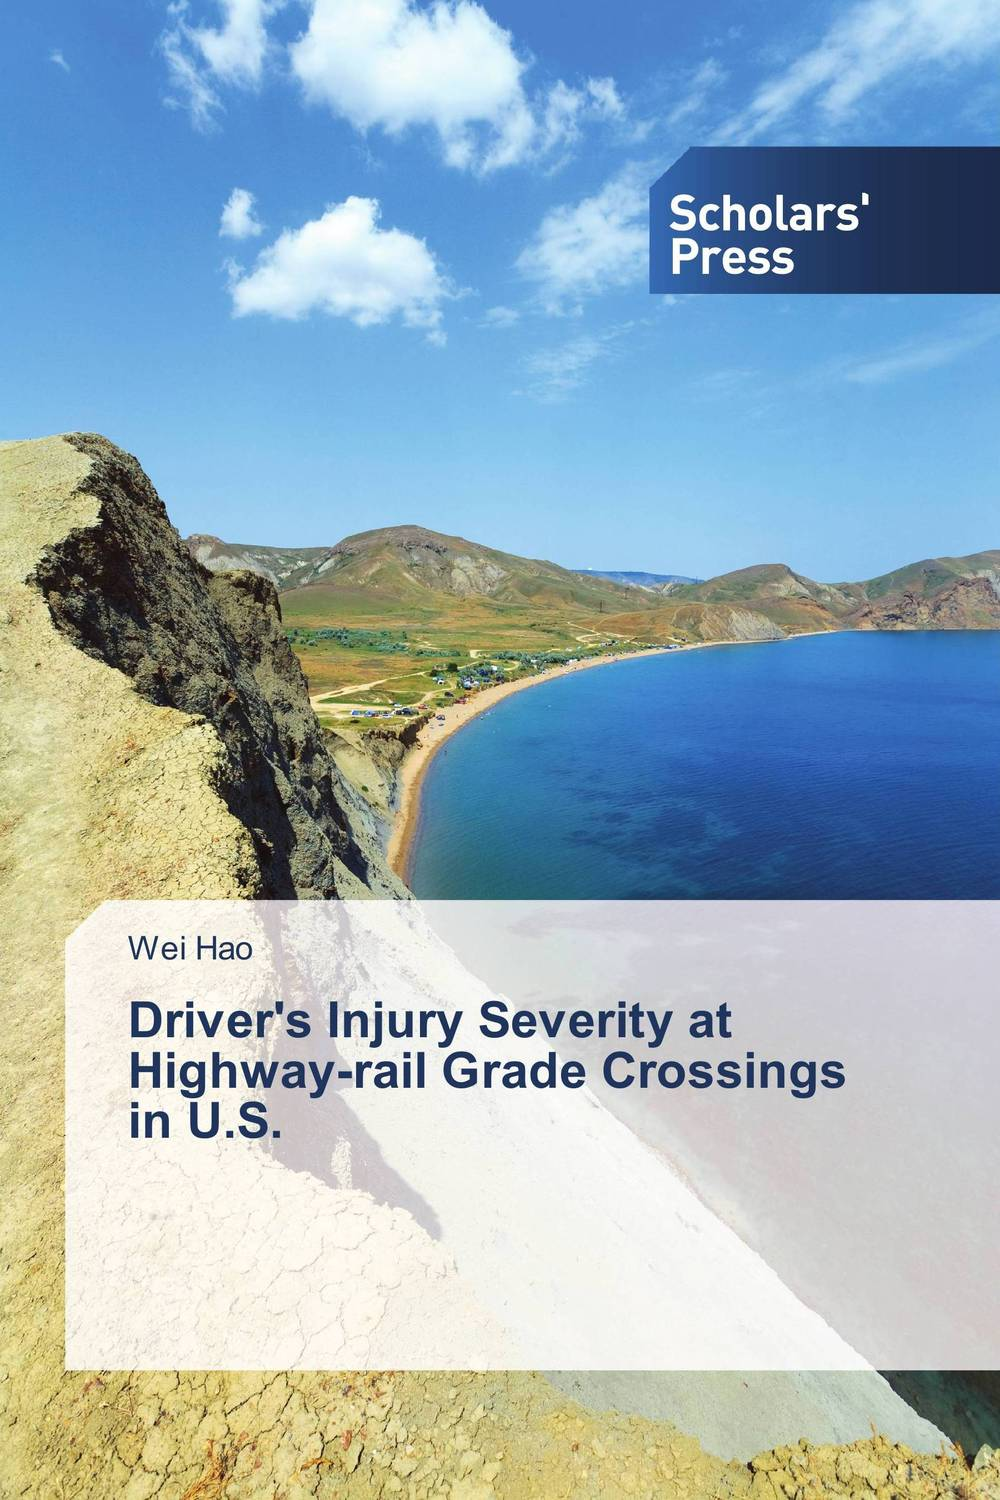 Driver's Injury Severity at Highway-rail Grade Crossings in U.S. seunghwan shin and venky shankar selection bias and heterogeneity in severity models